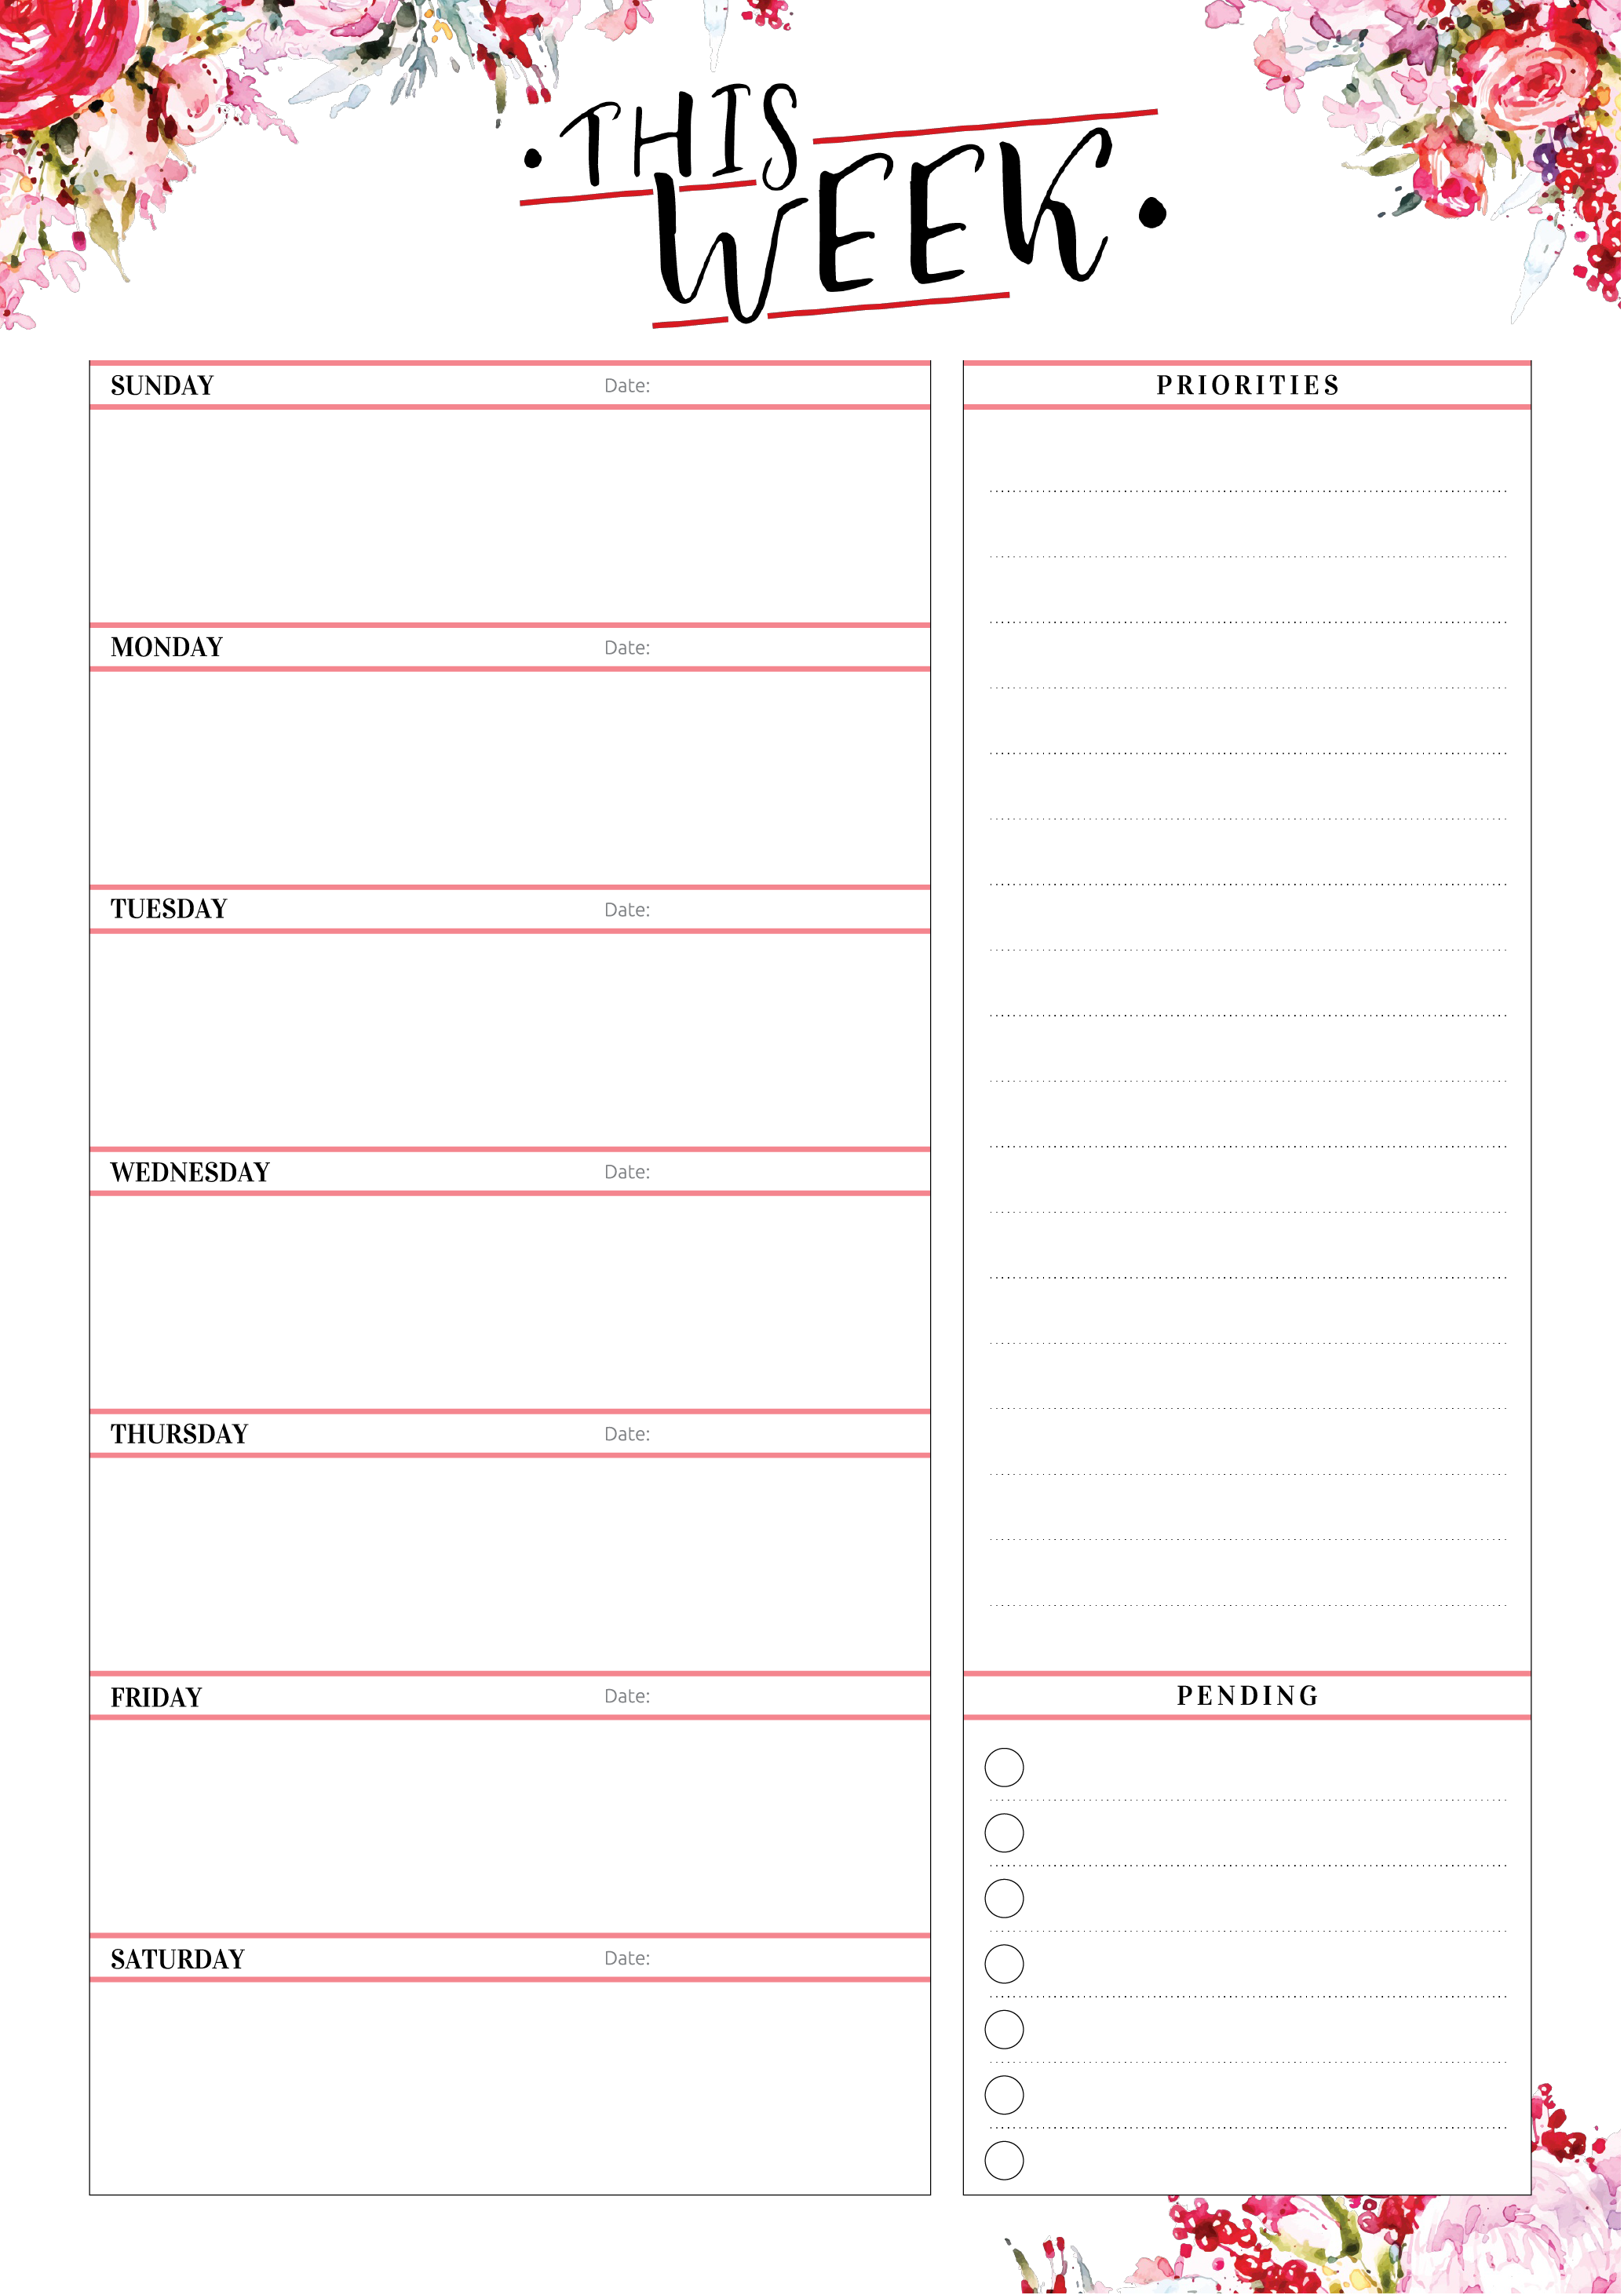 Free Printable Weekly Planner With Priorities Download